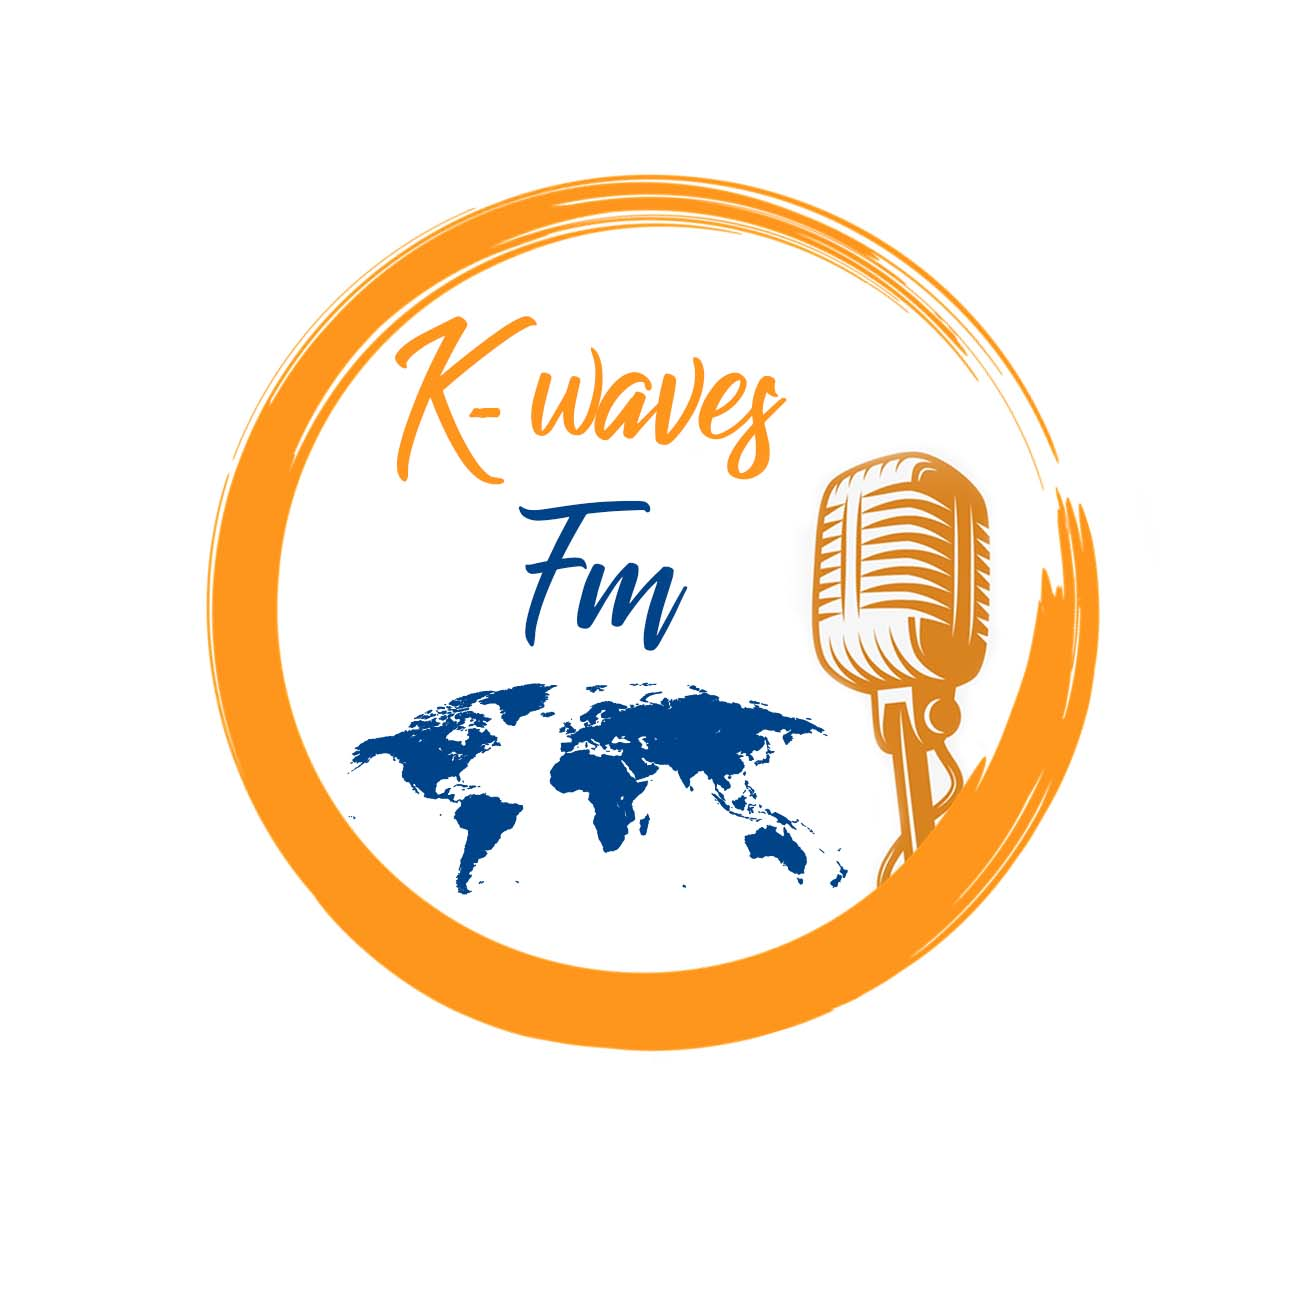 Kingdom-waves fm